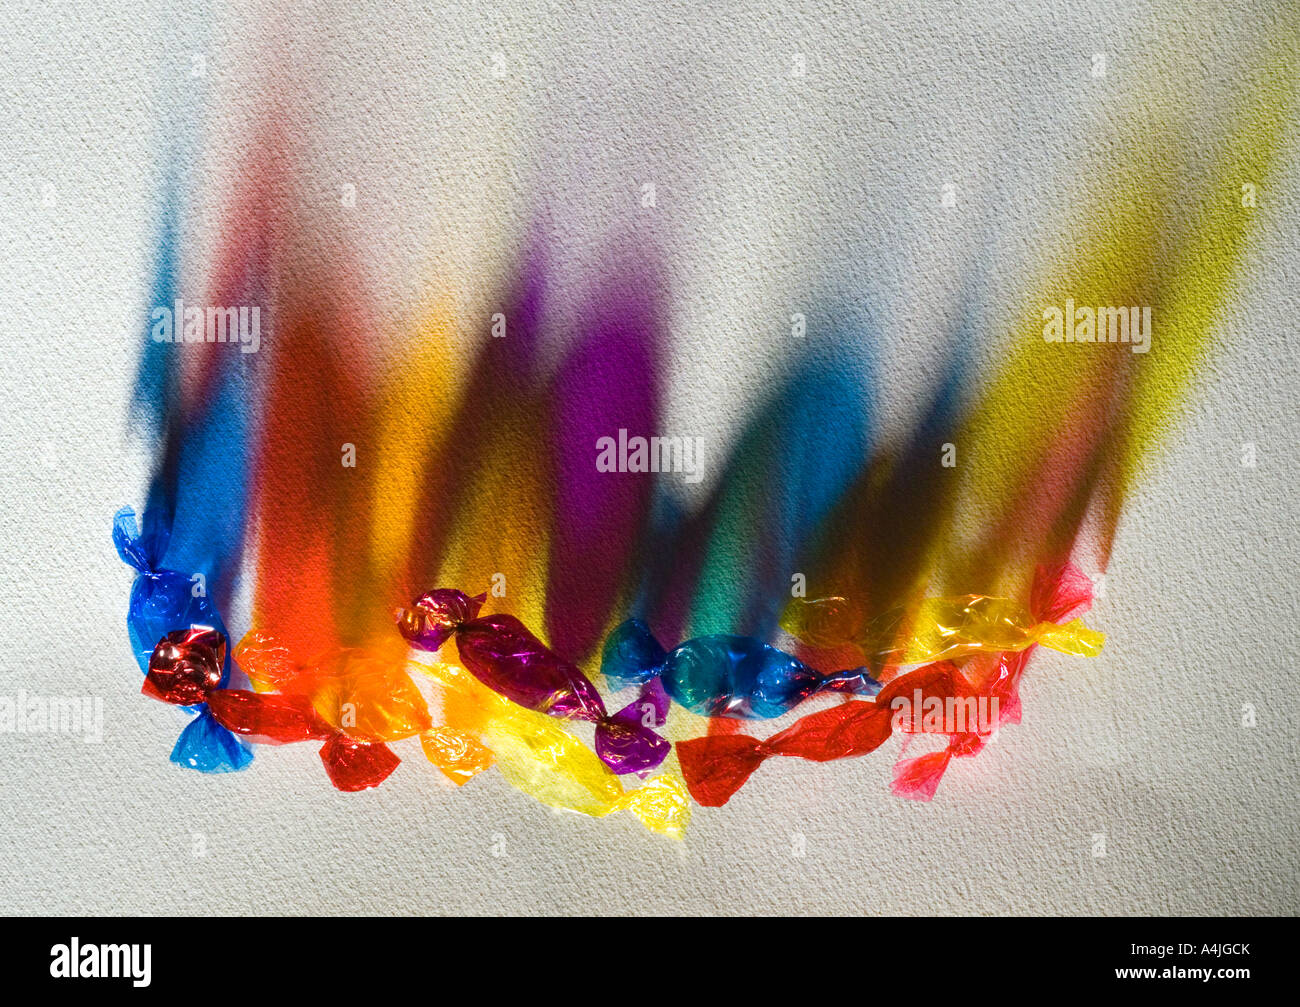 cellophane sweet wrappers with light shining through on textured paper - Stock Image